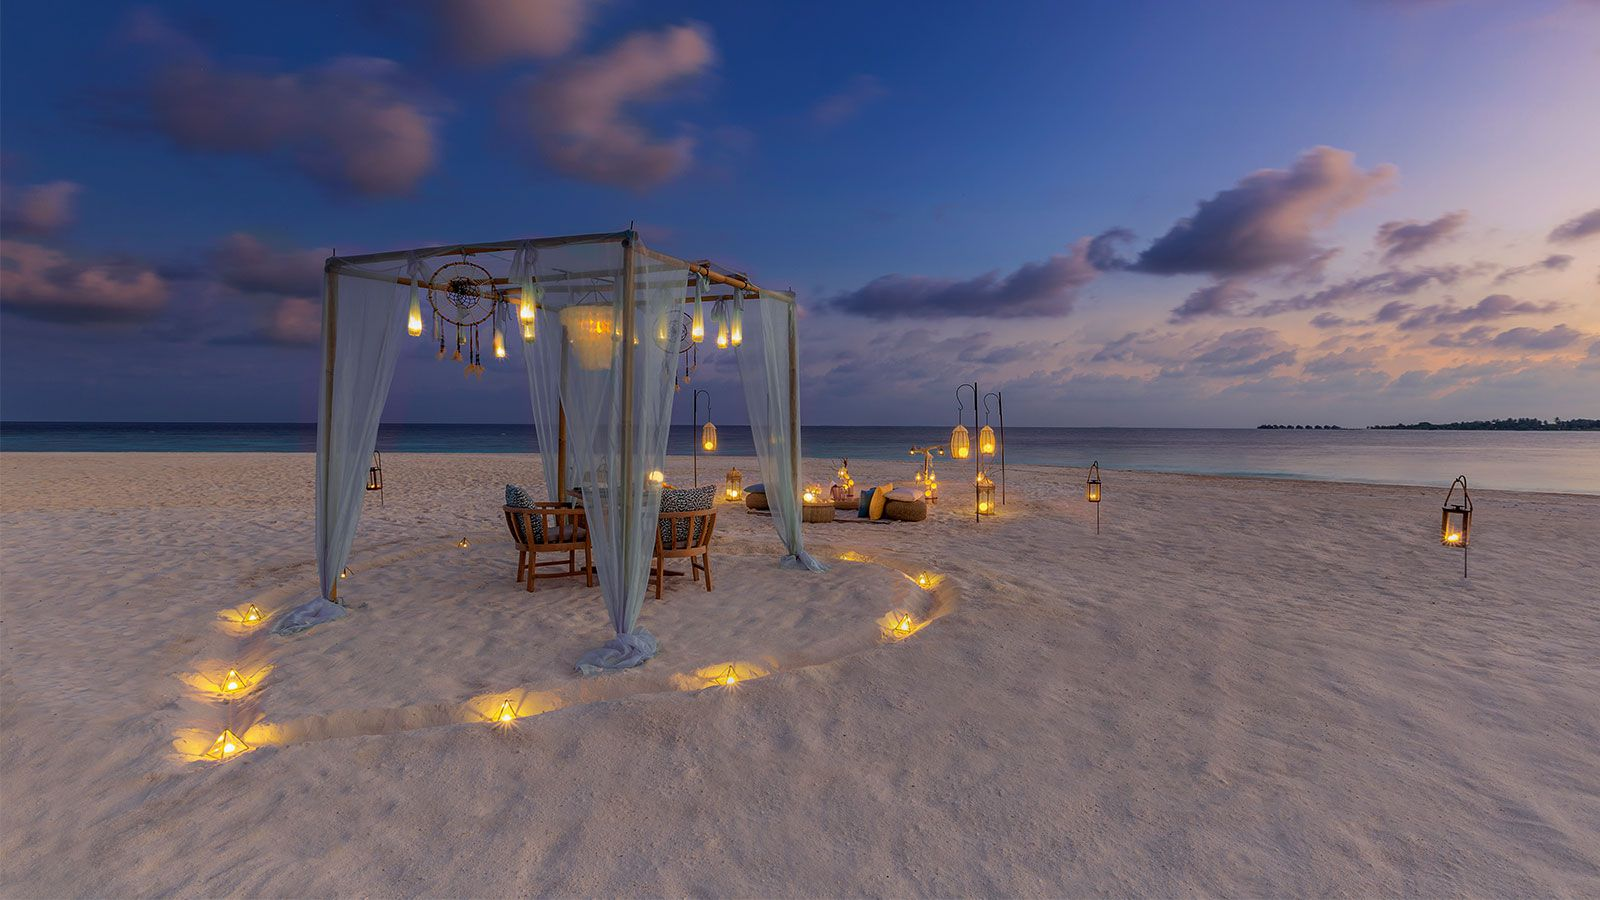 Beach Dinner Kudadoo Maldives Private Island